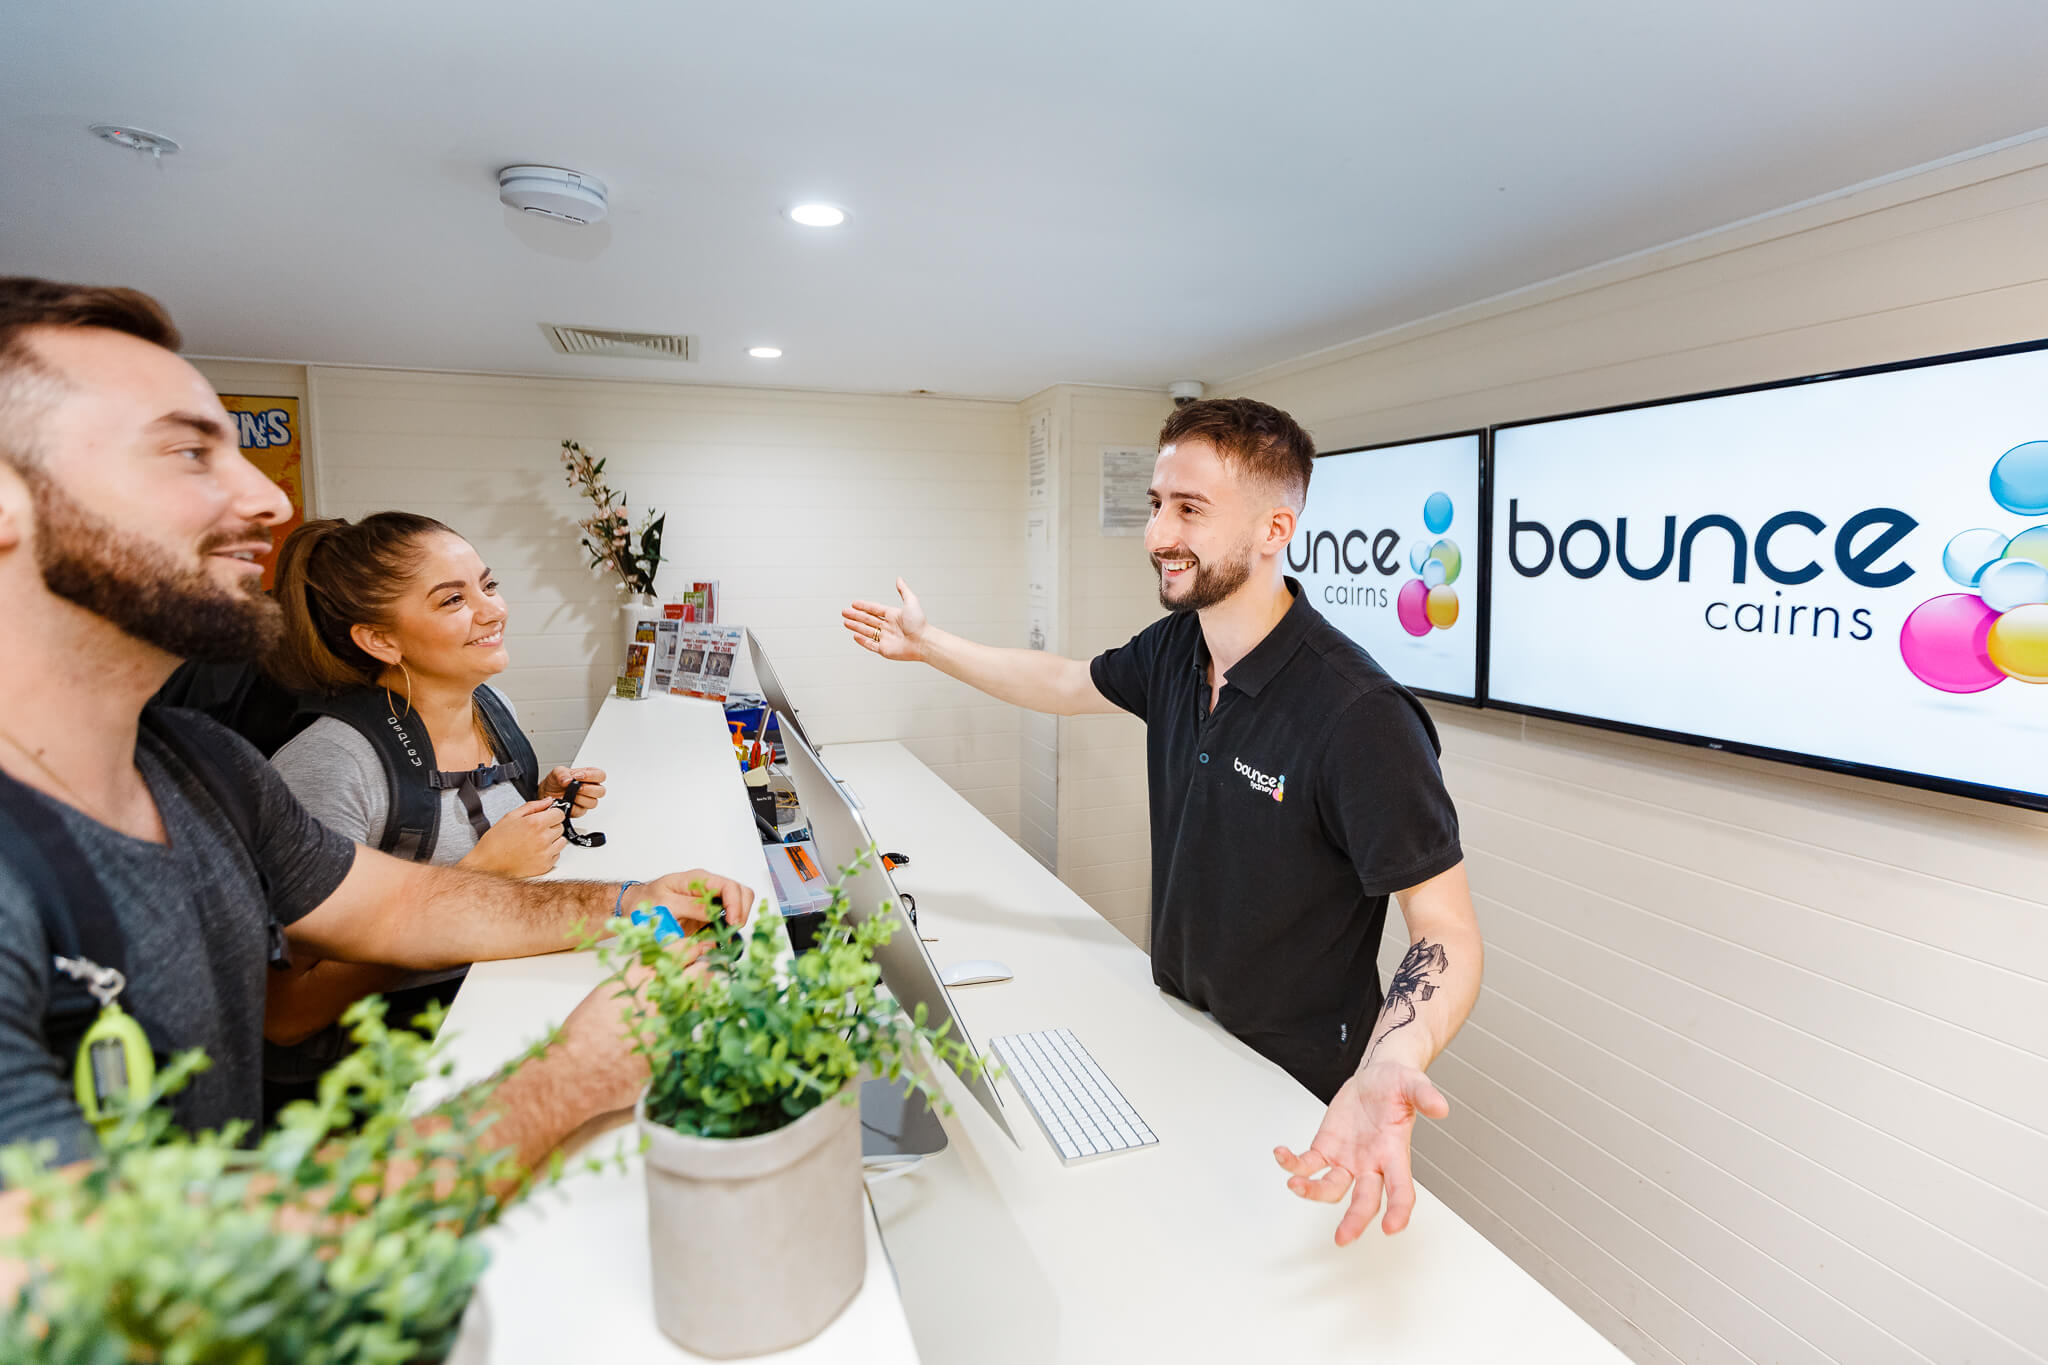 Welcome to Bounce Cairns